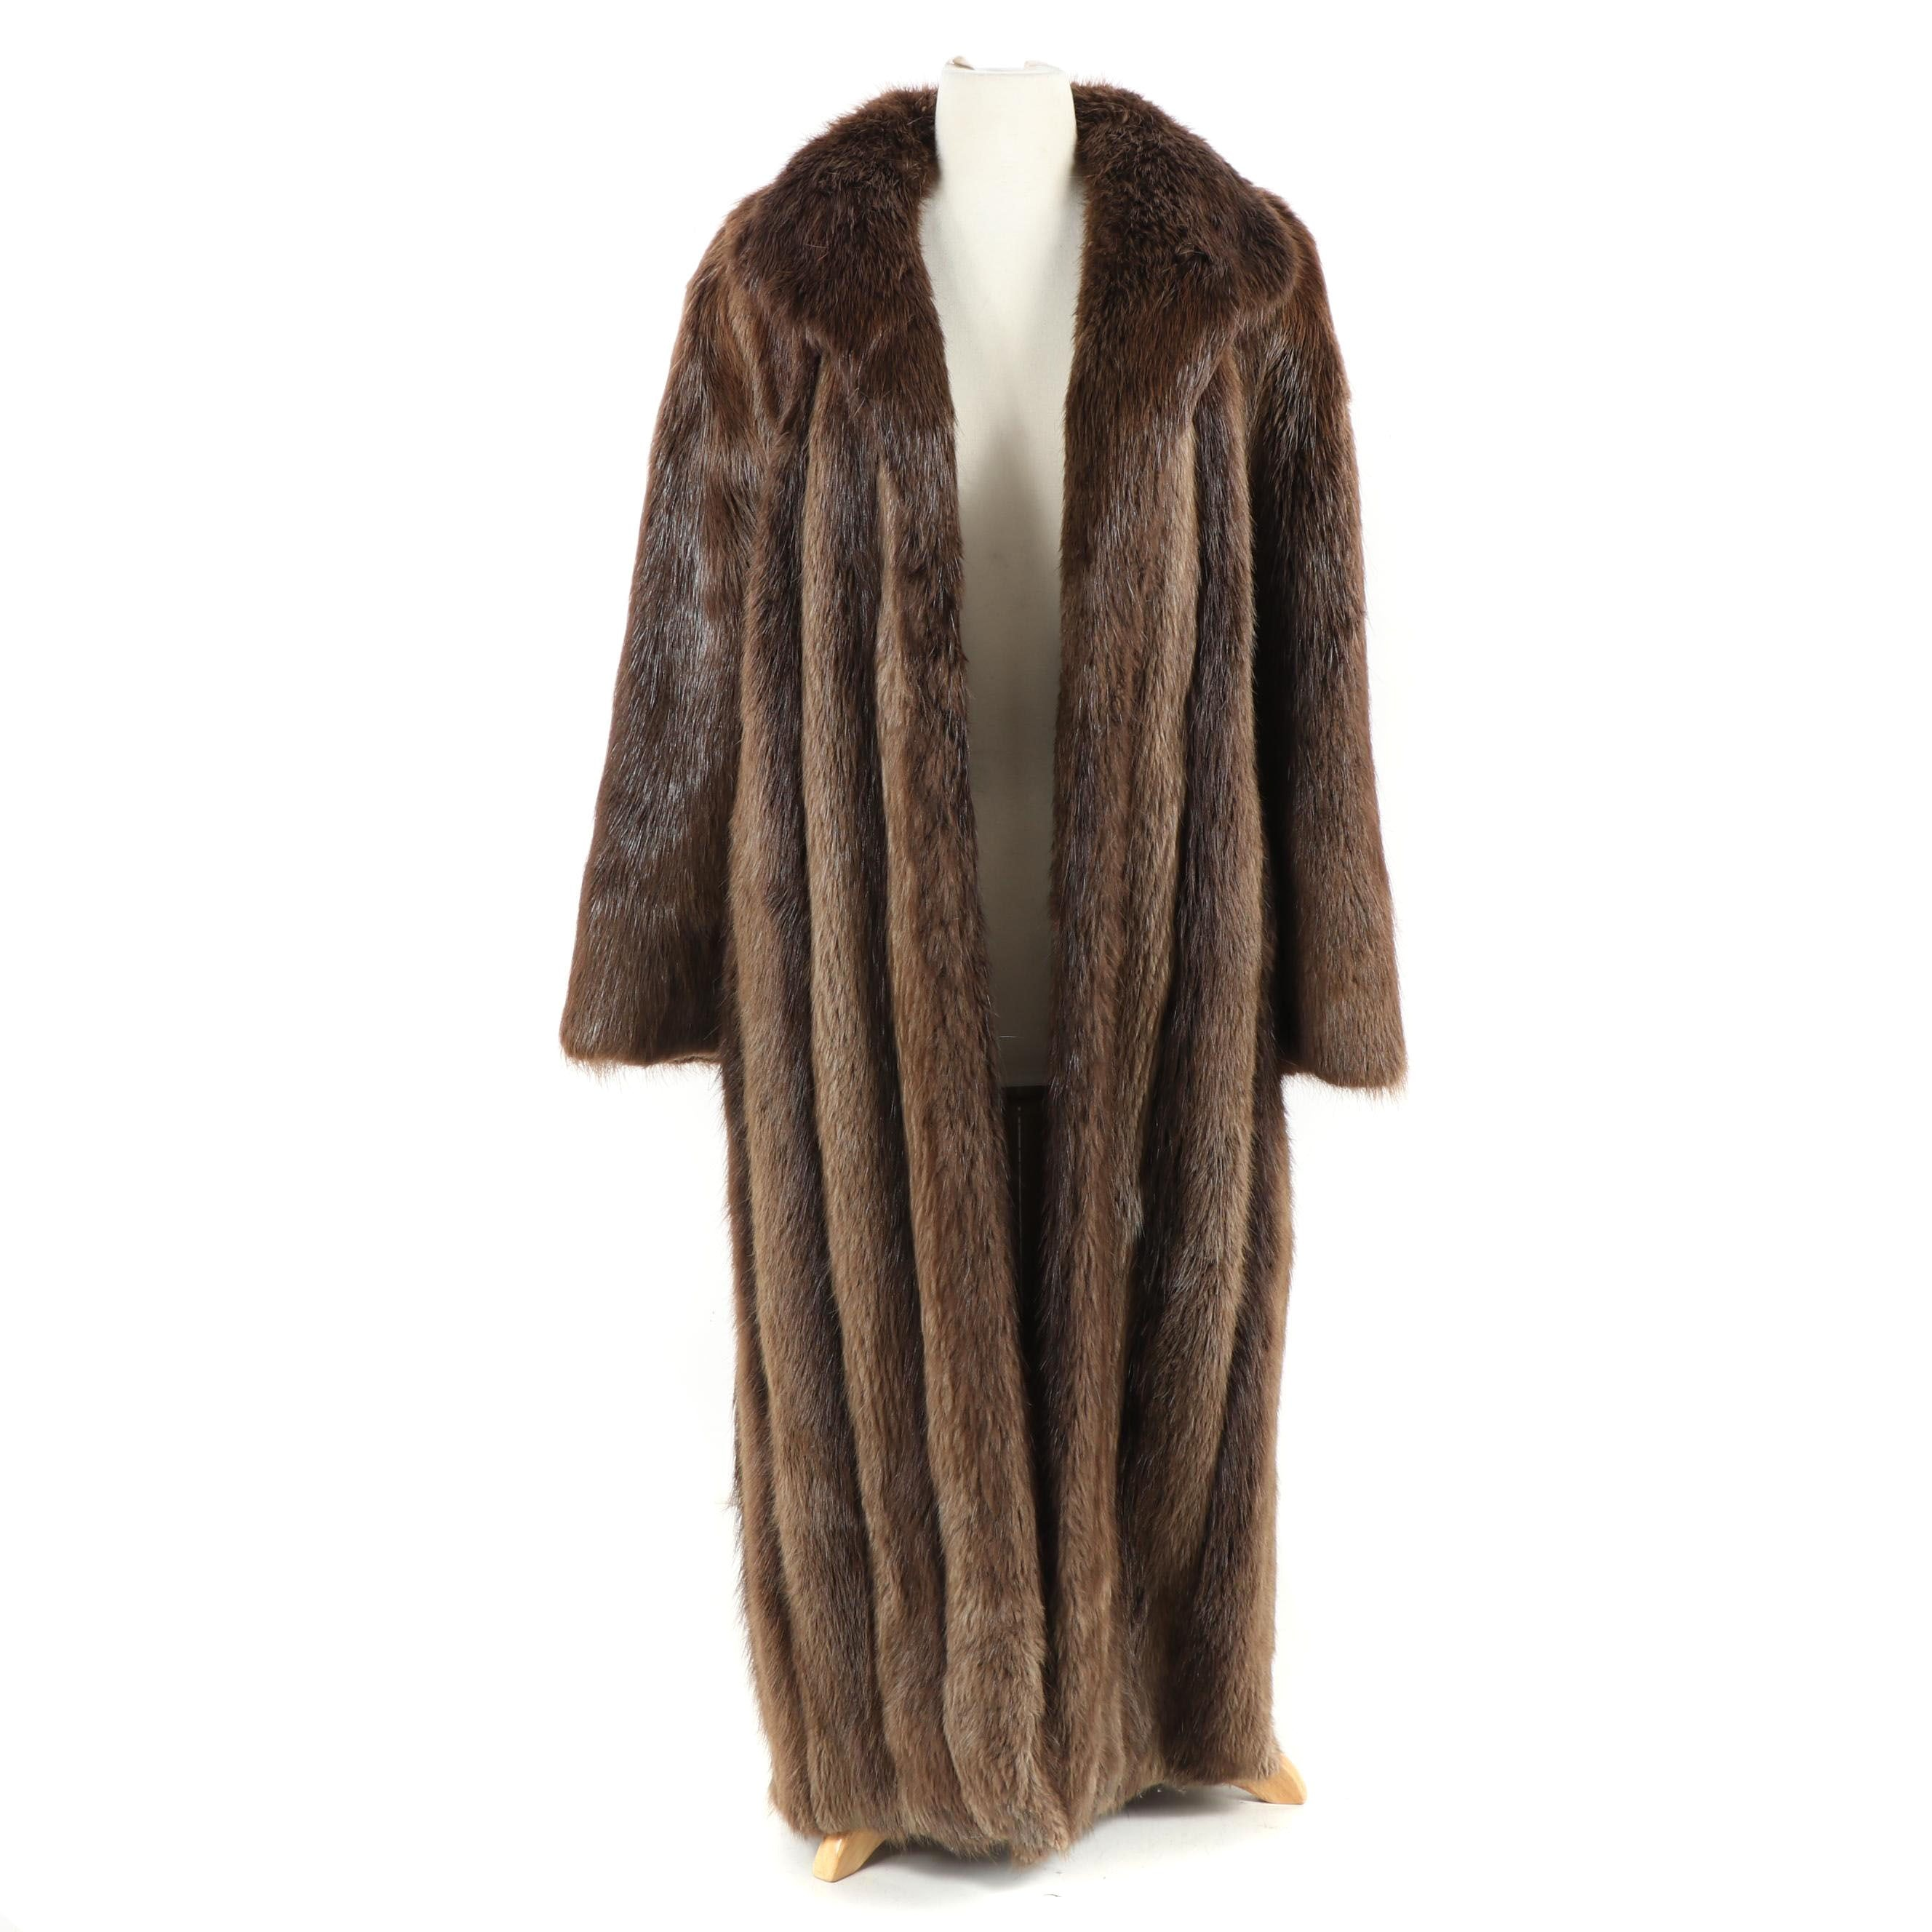 Women's Beaver Fur Coat from The Fur Centre, Vintage